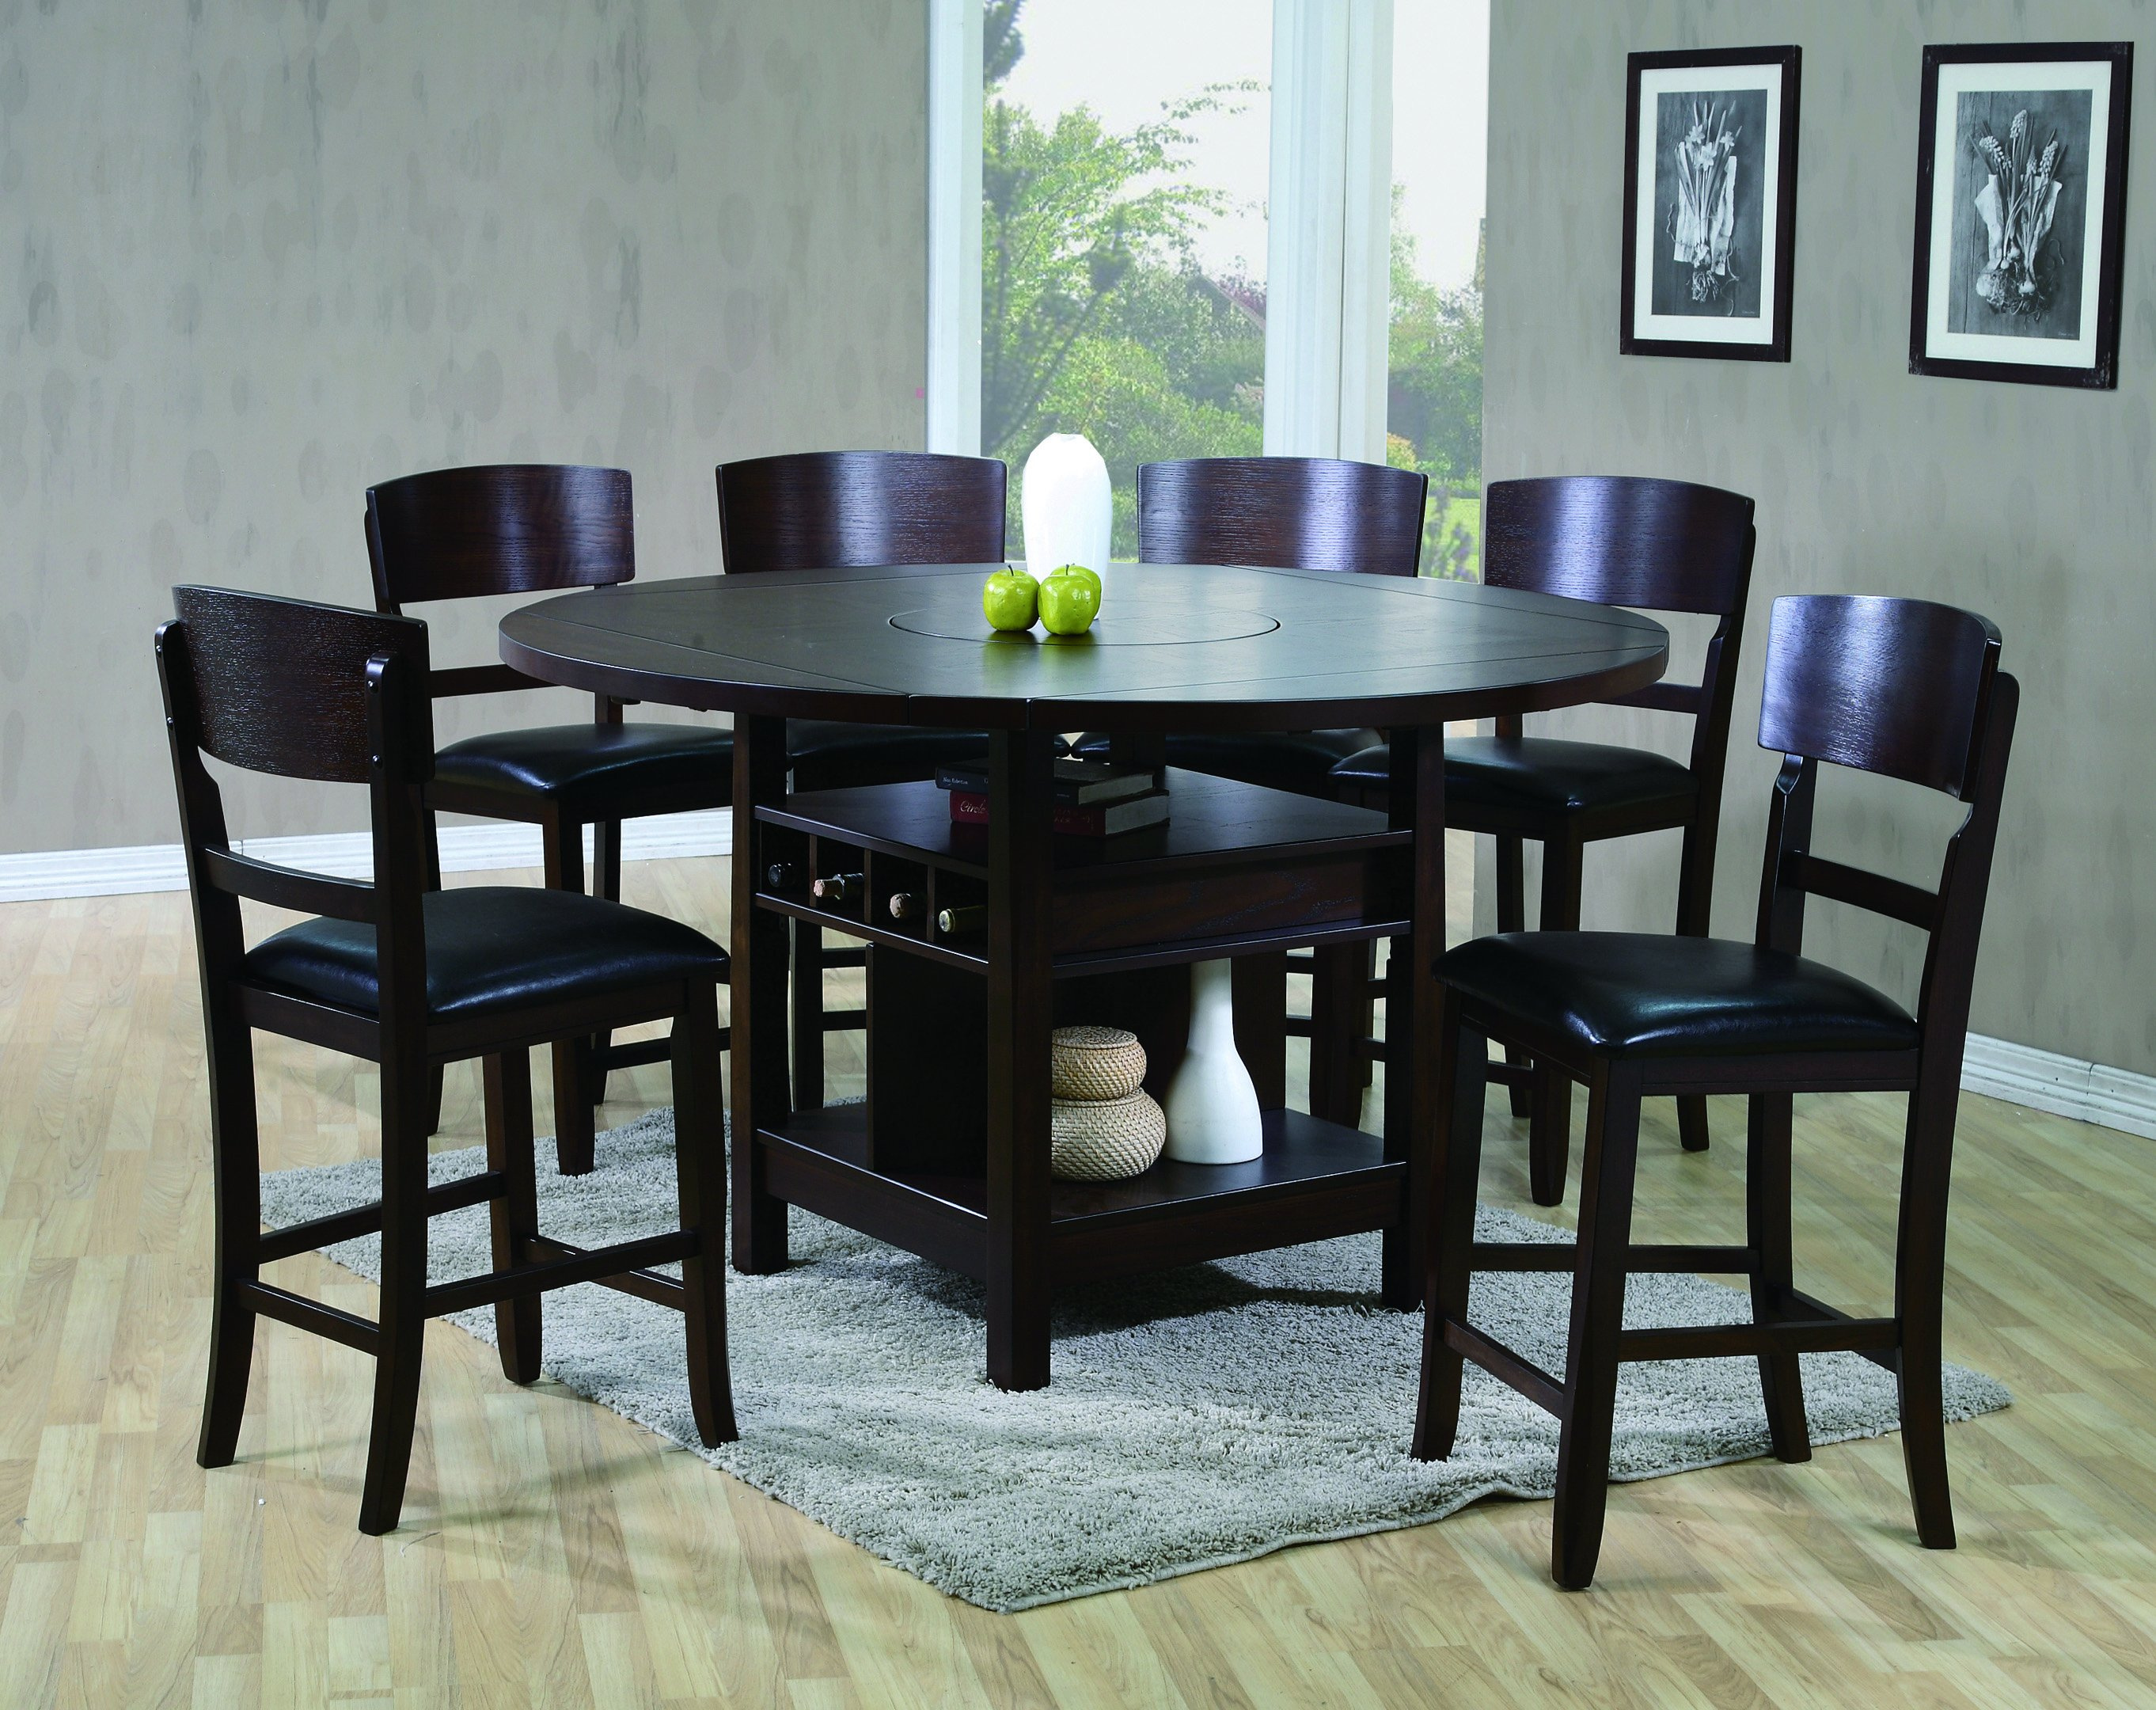 2849 Conner counter dining set